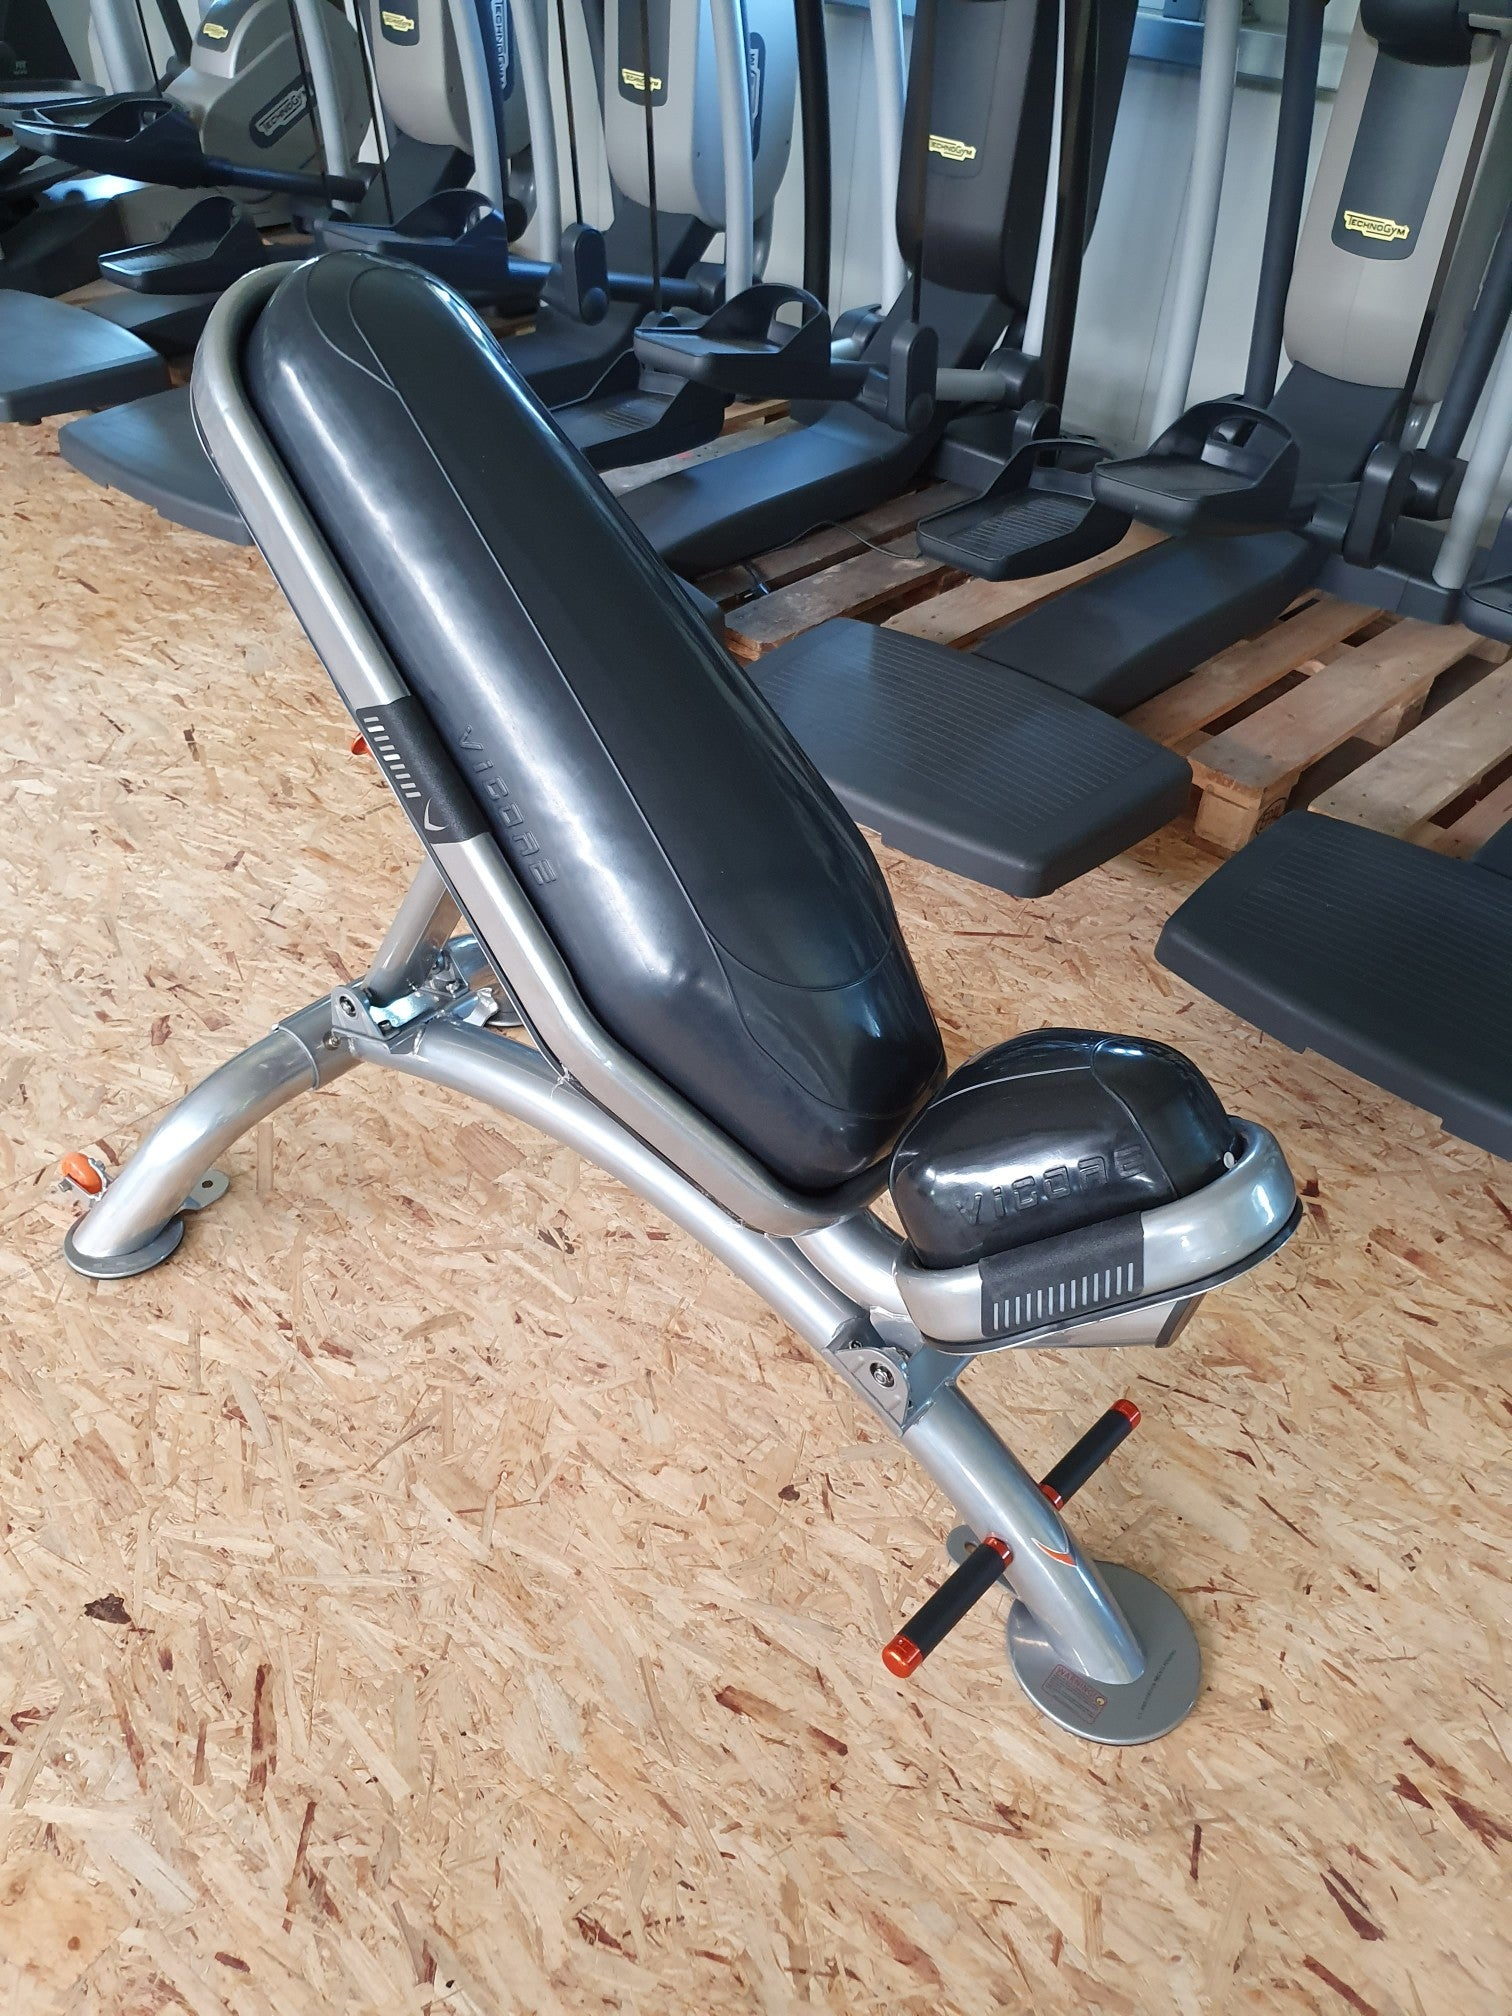 Vicore Multi Funktions Luft Polster Hantel Bank Adjustable Bench Fitness Gym